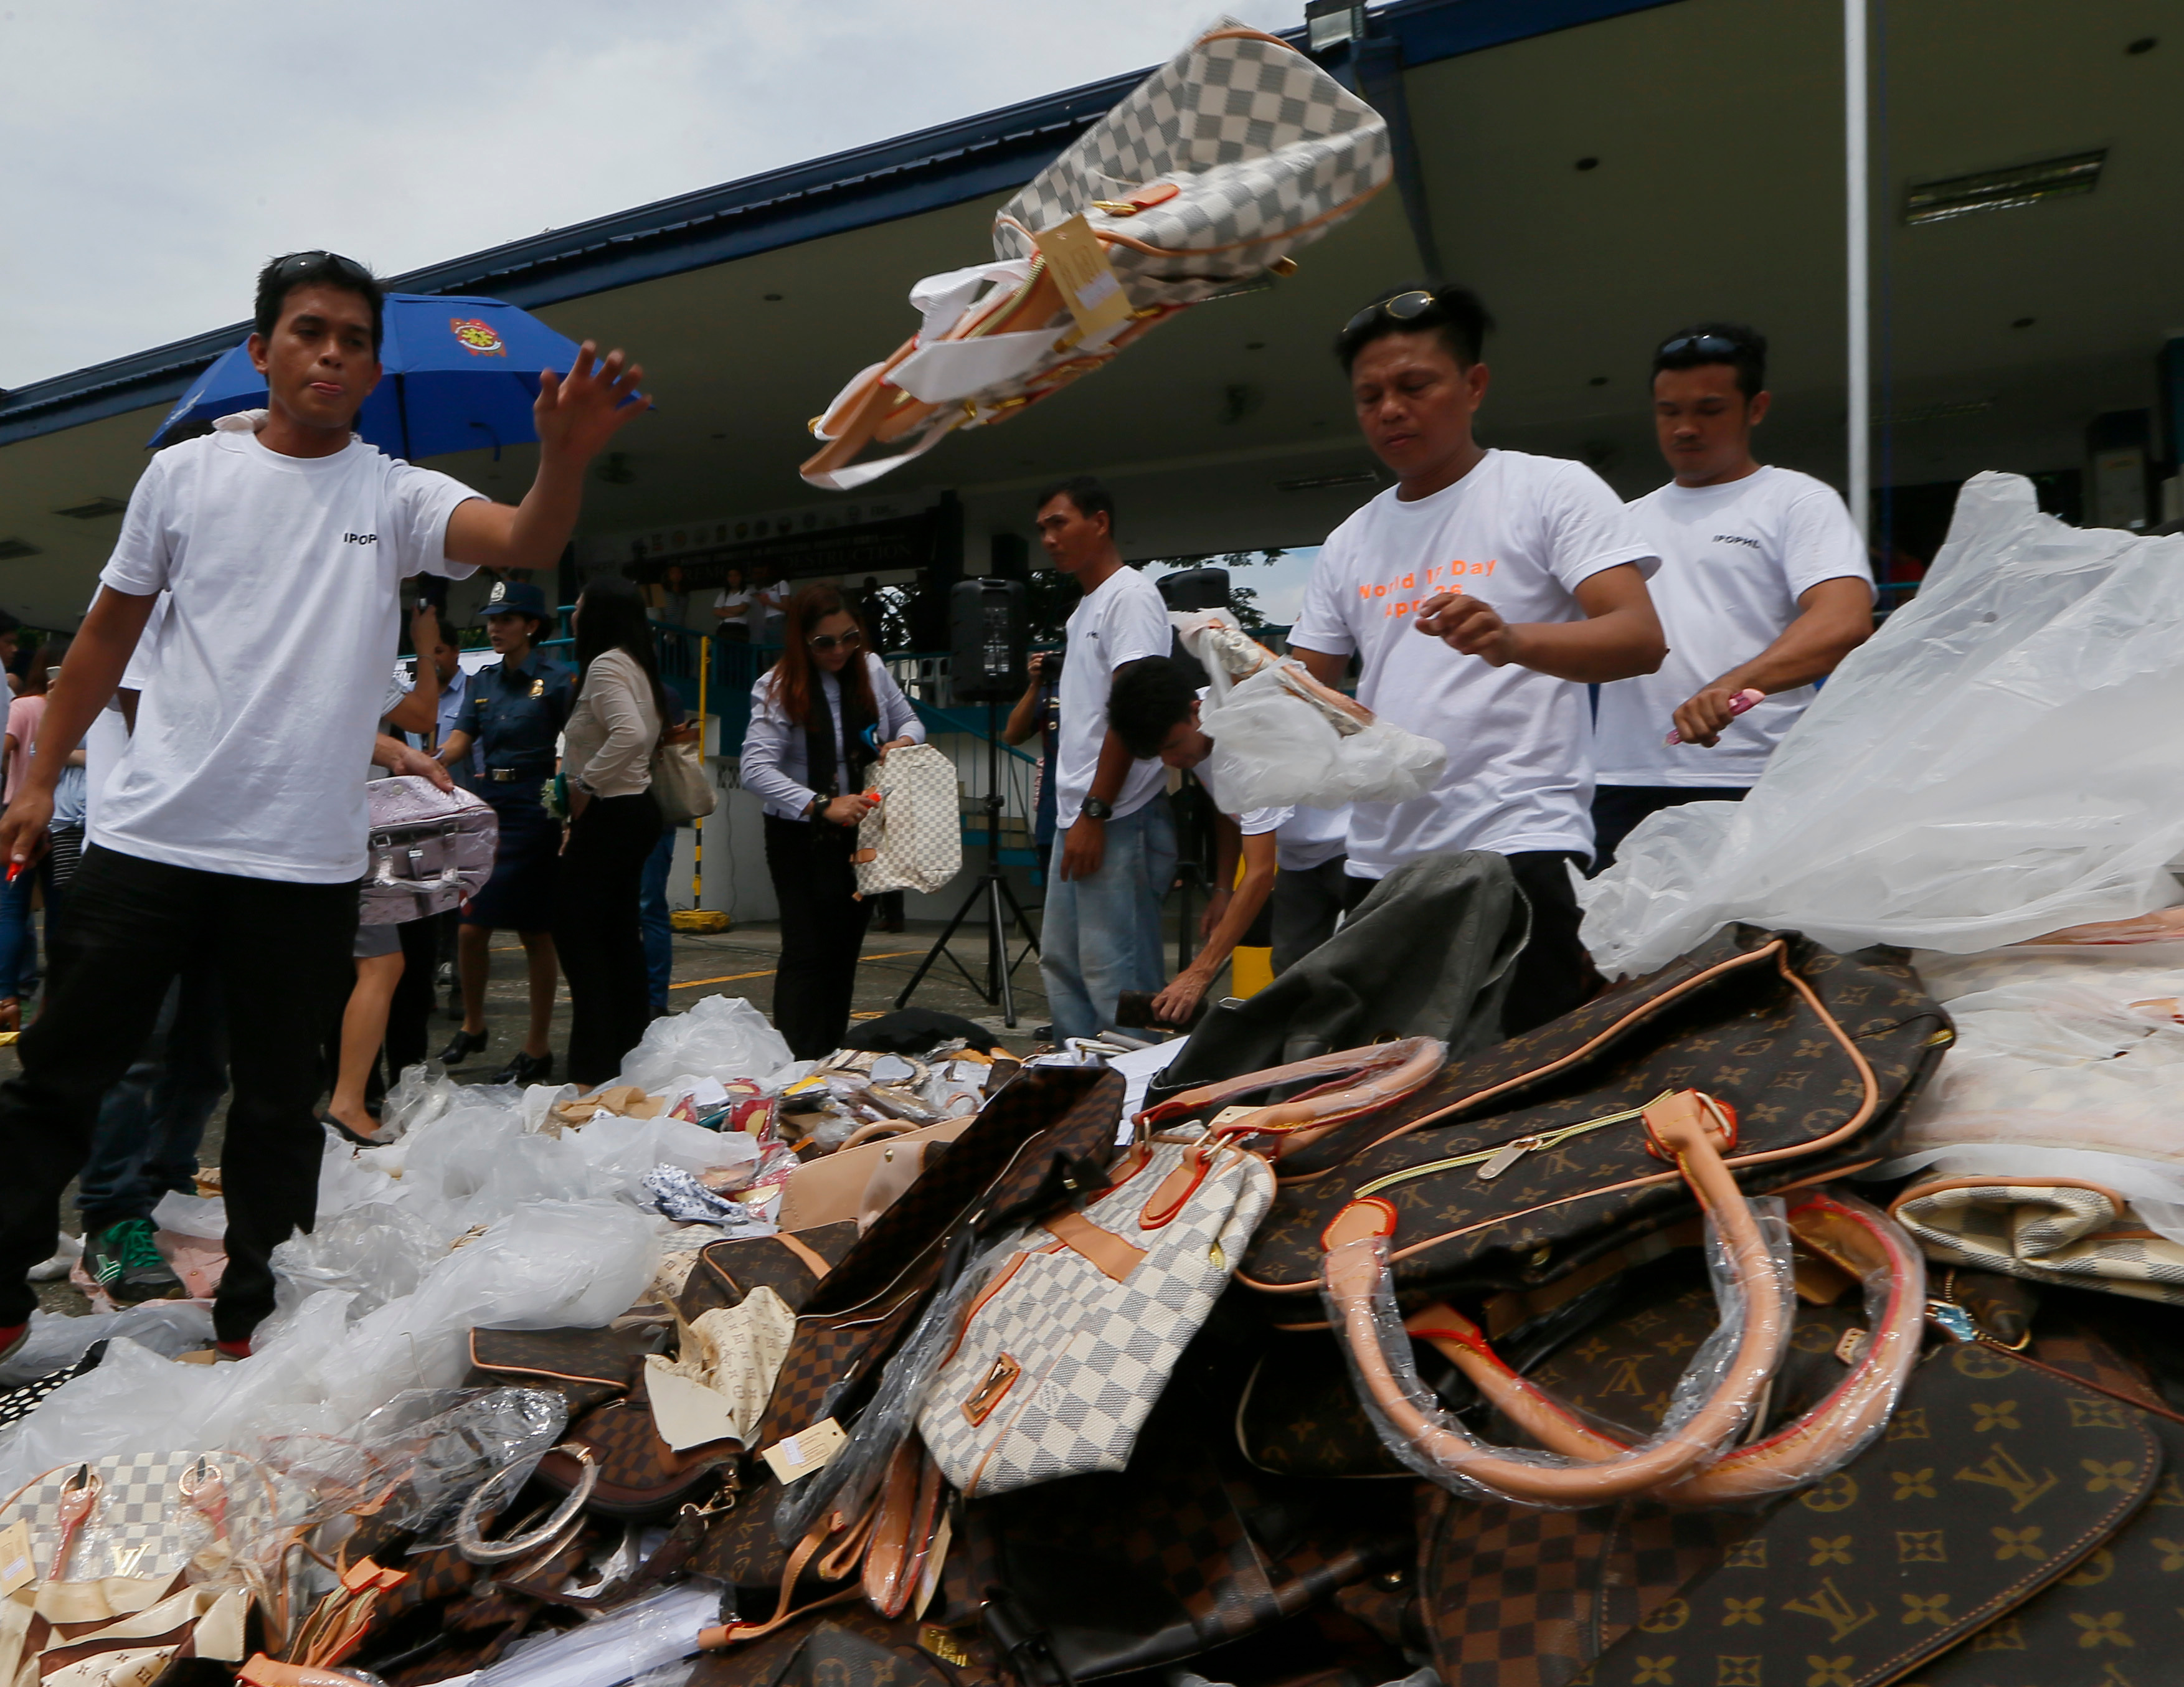 Destruction of counterfeit goods in the Philippines